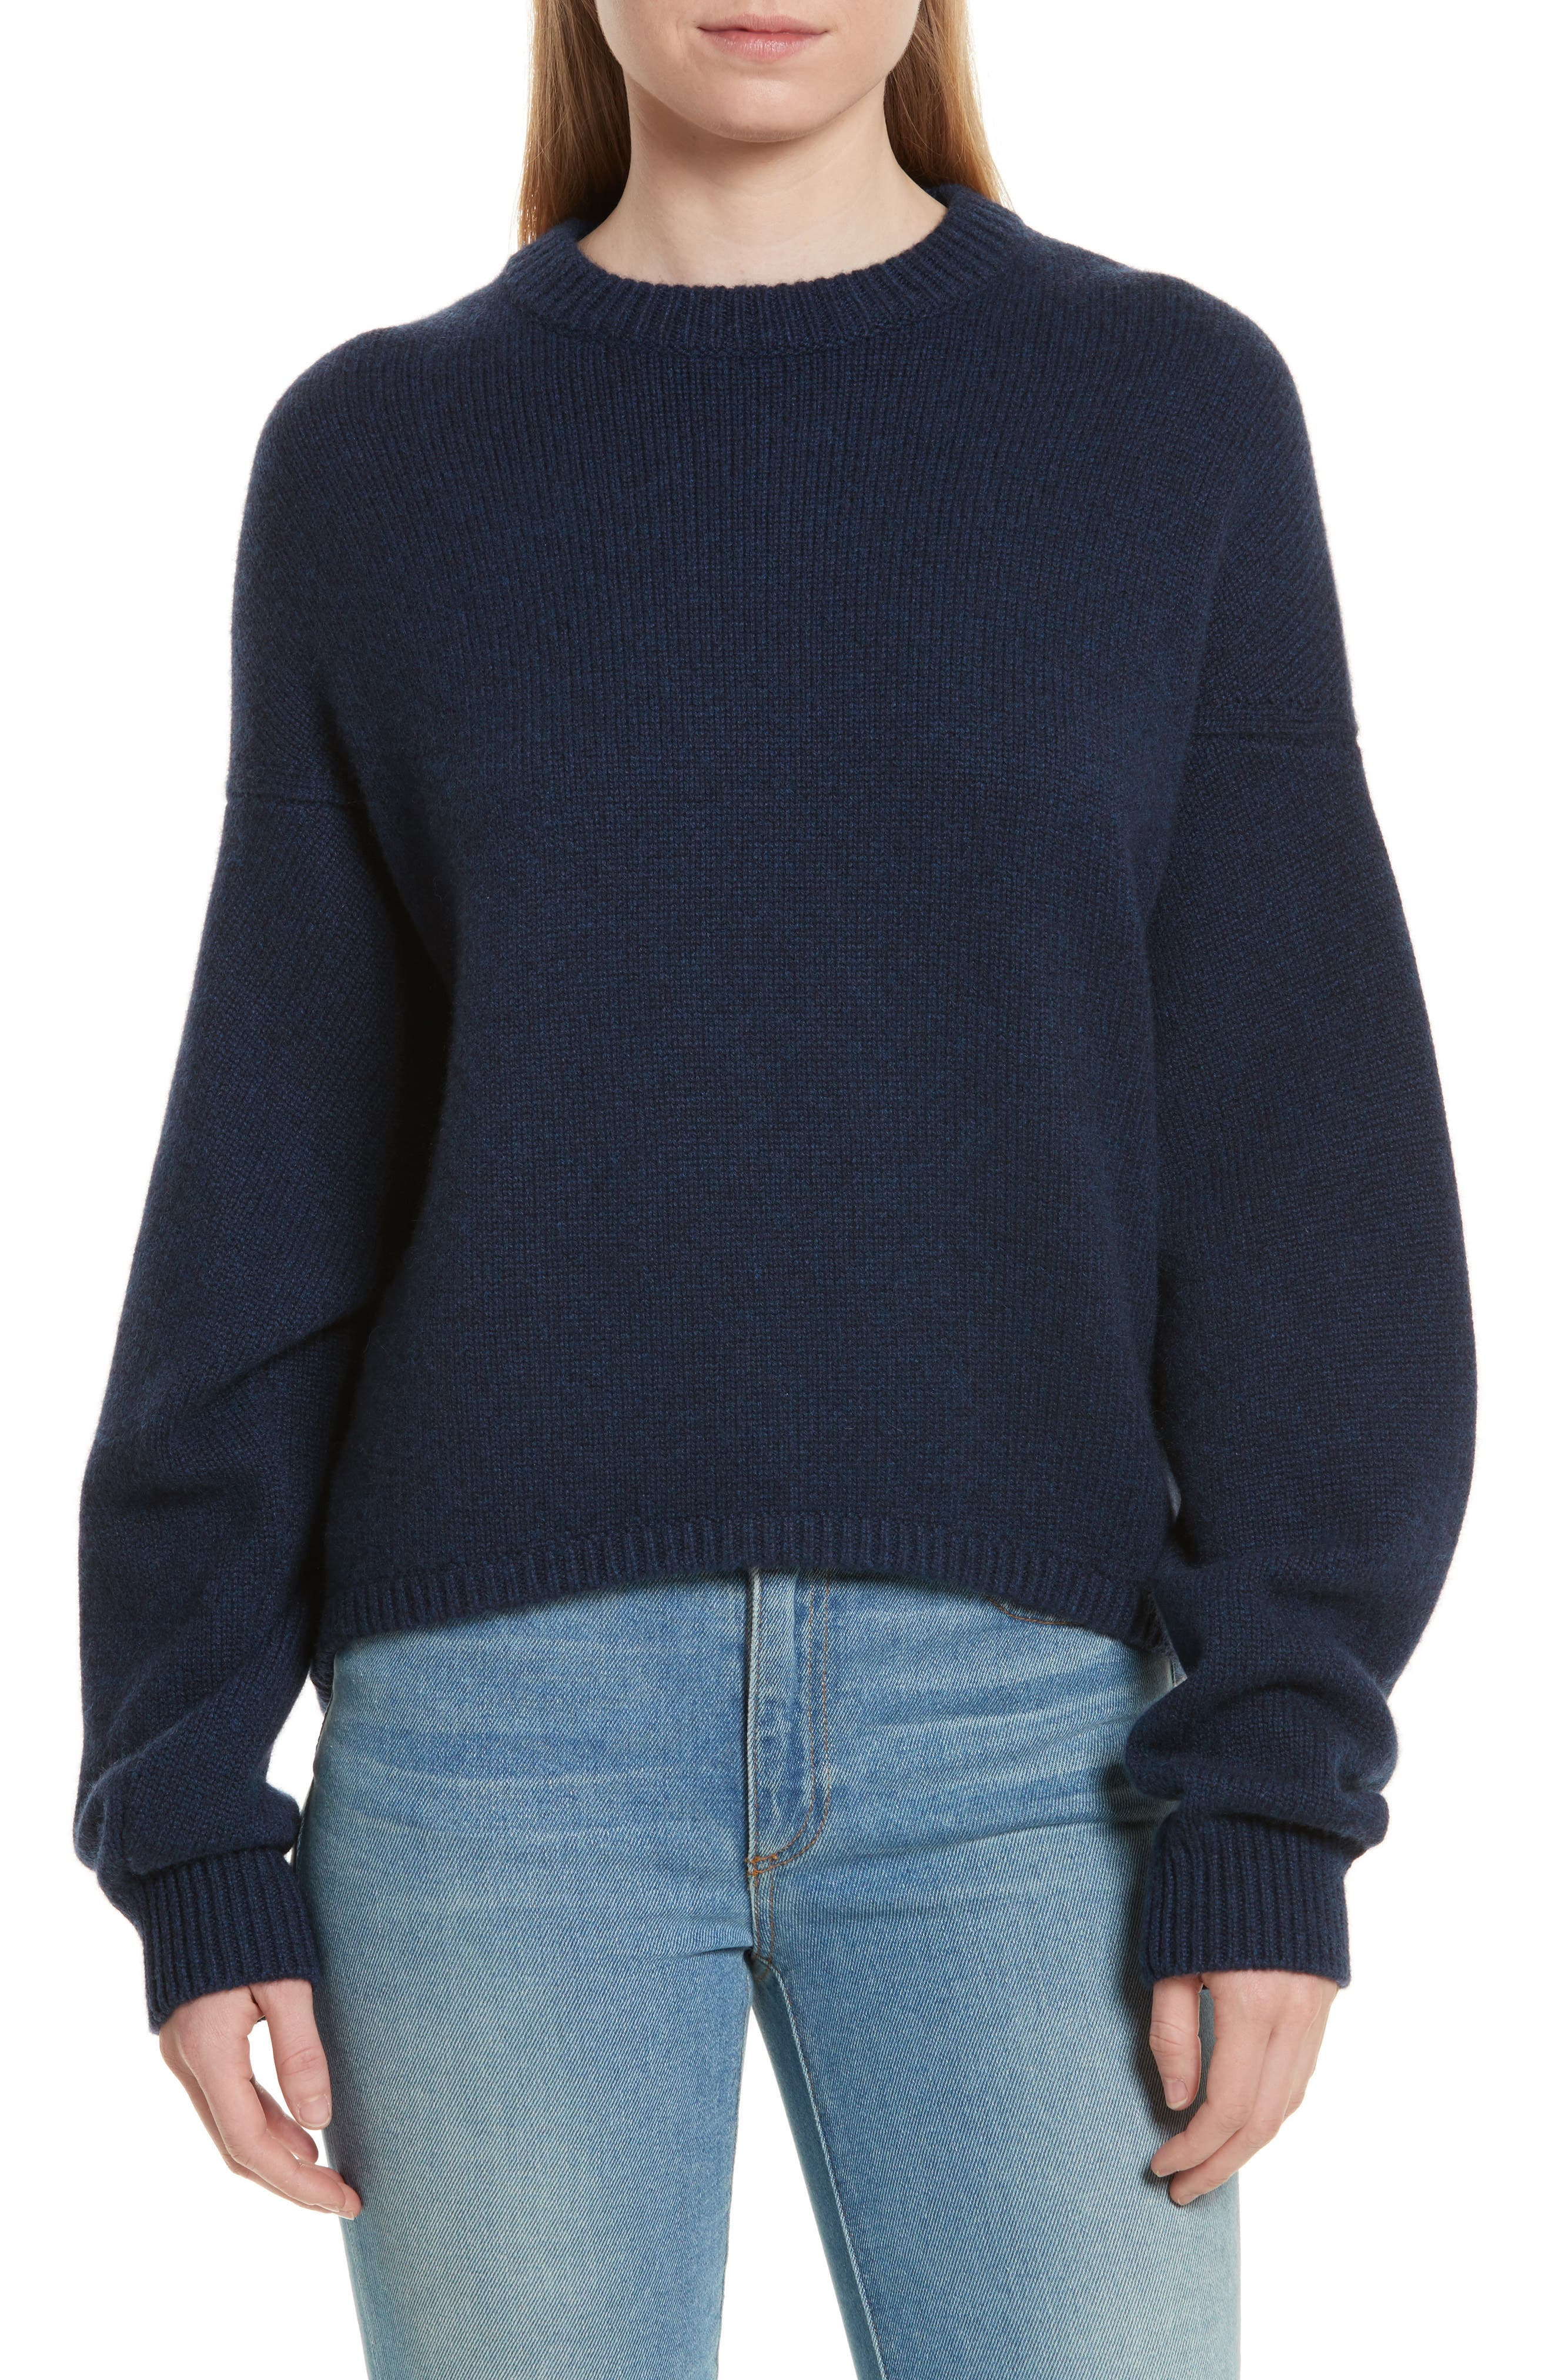 Main Image - Tibi Sculpted Sleeve High/Low Cashmere Sweater